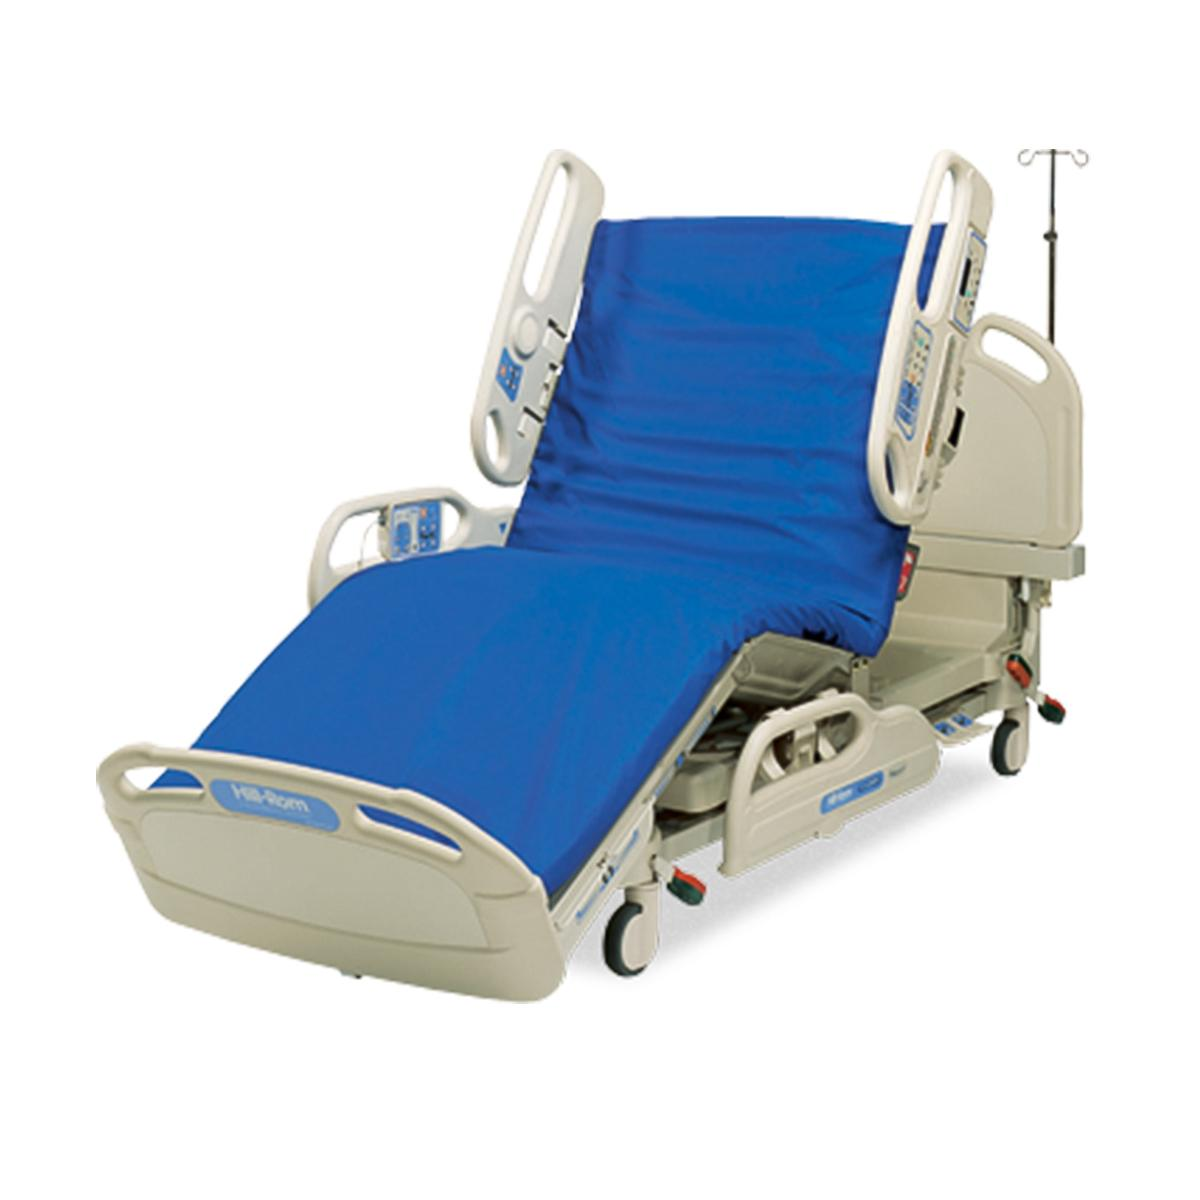 VersaCare Med Surg Bed, 3/4 view, right side